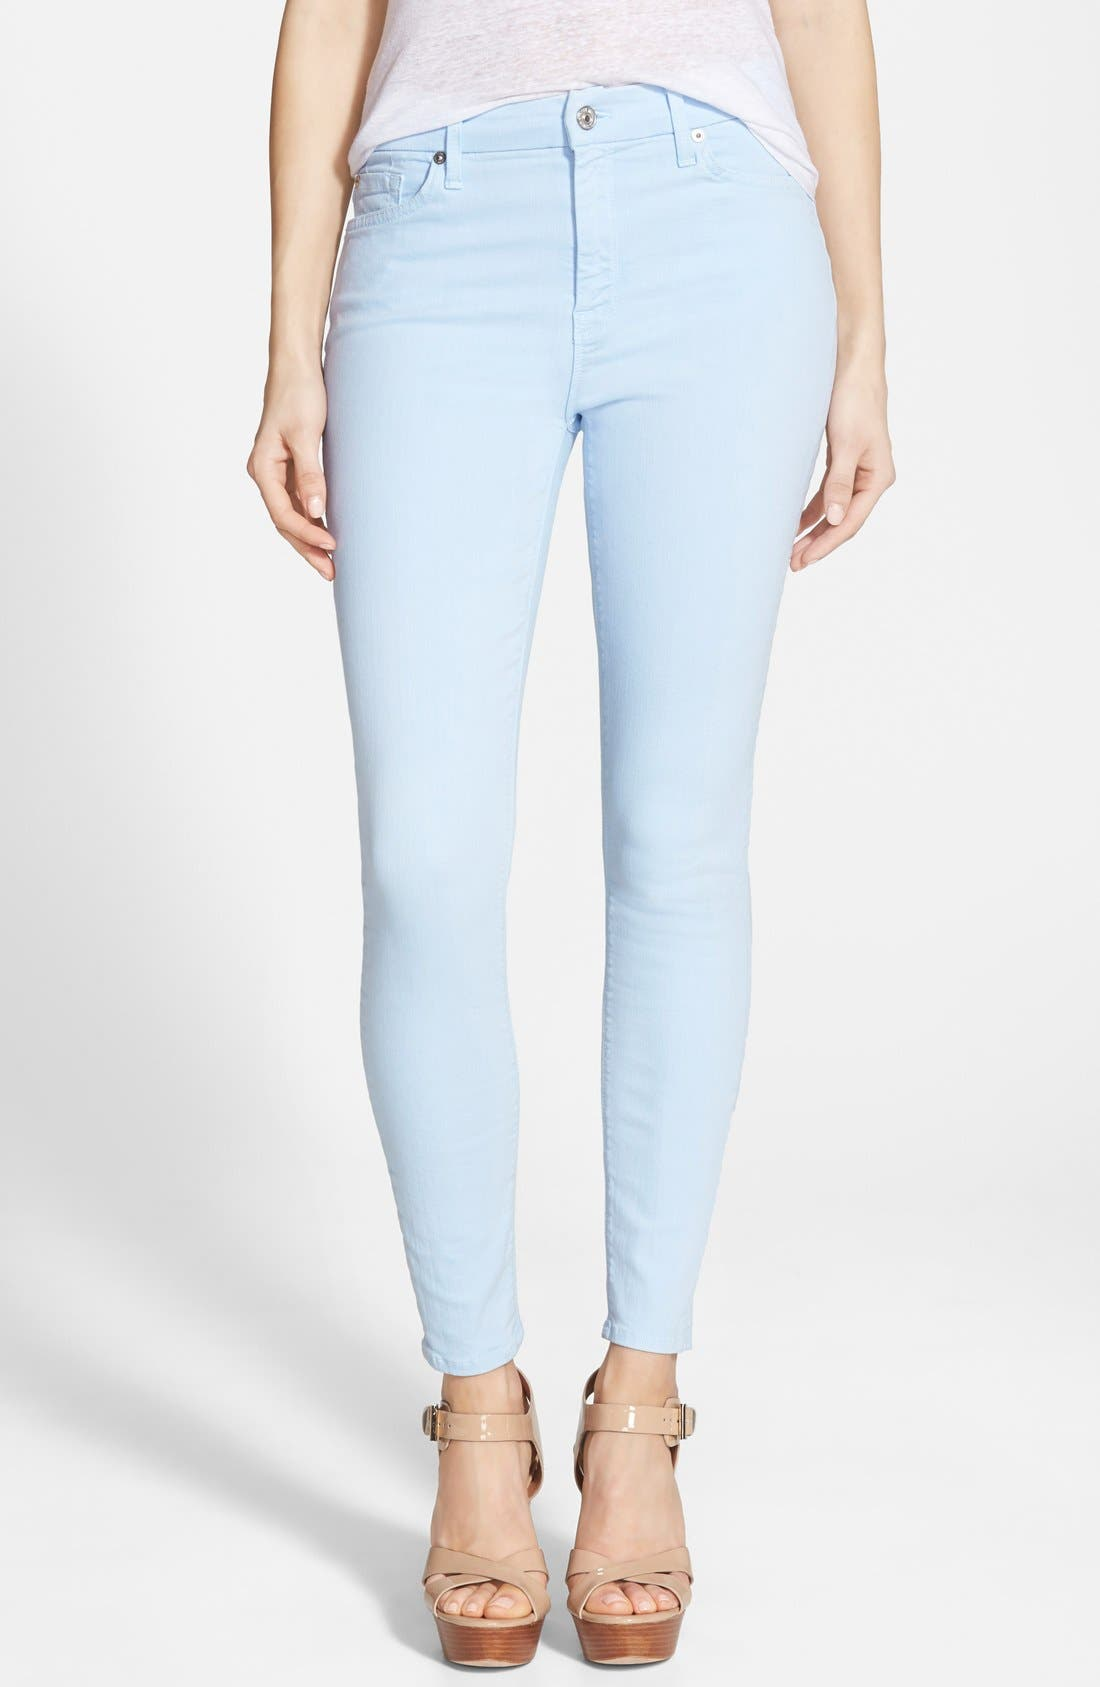 Main Image - 7 For All Mankind® High Rise Ankle Skinny Jeans (Cool Water Blue)